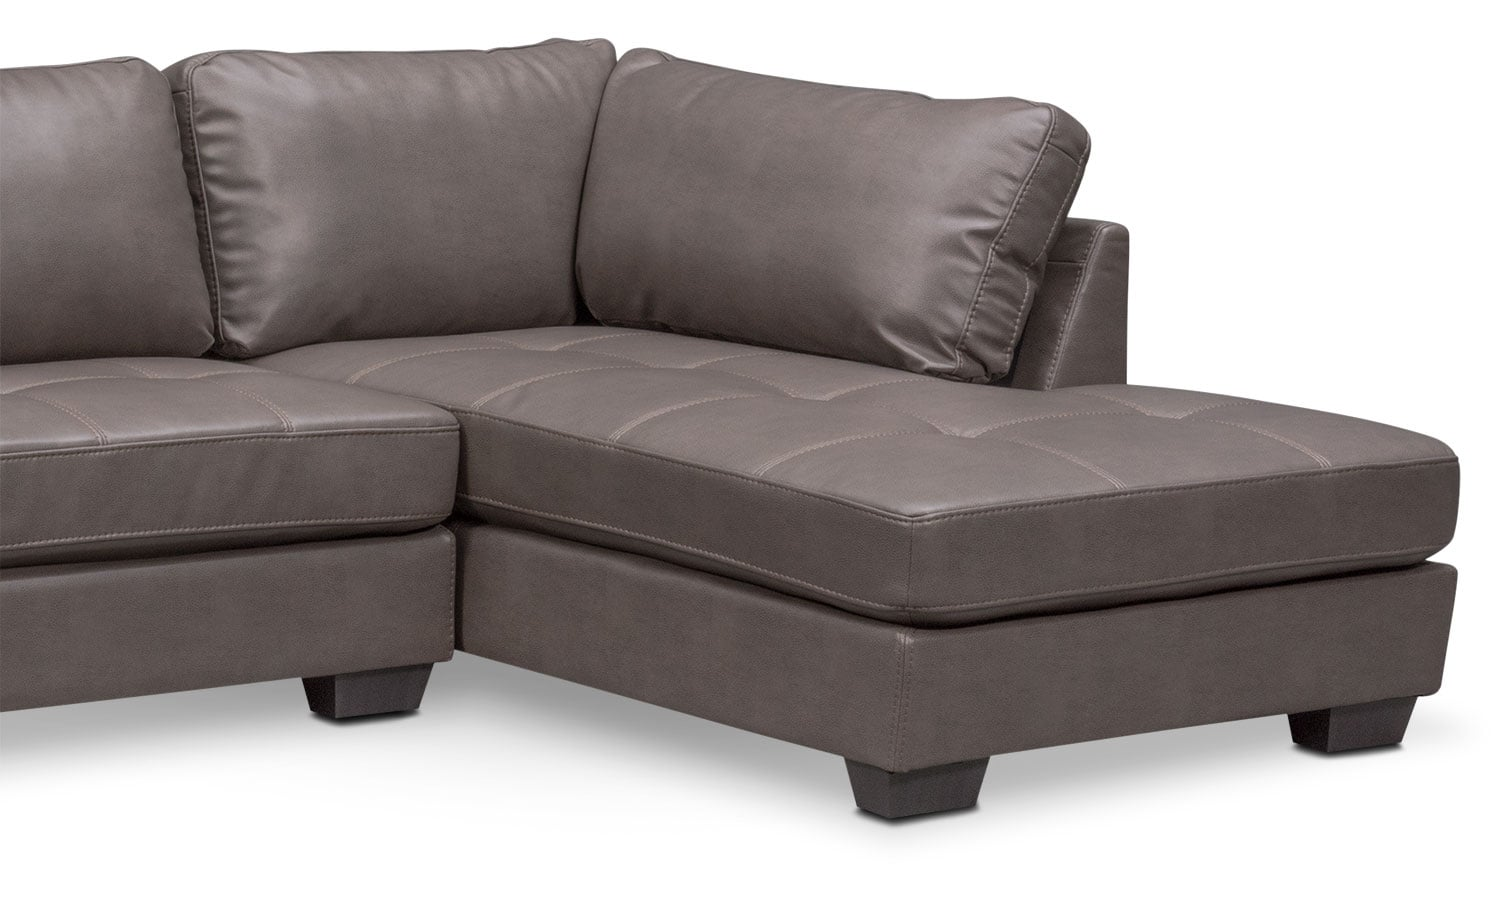 Santana 2 Piece Sectional With Chaise Value City Furniture And